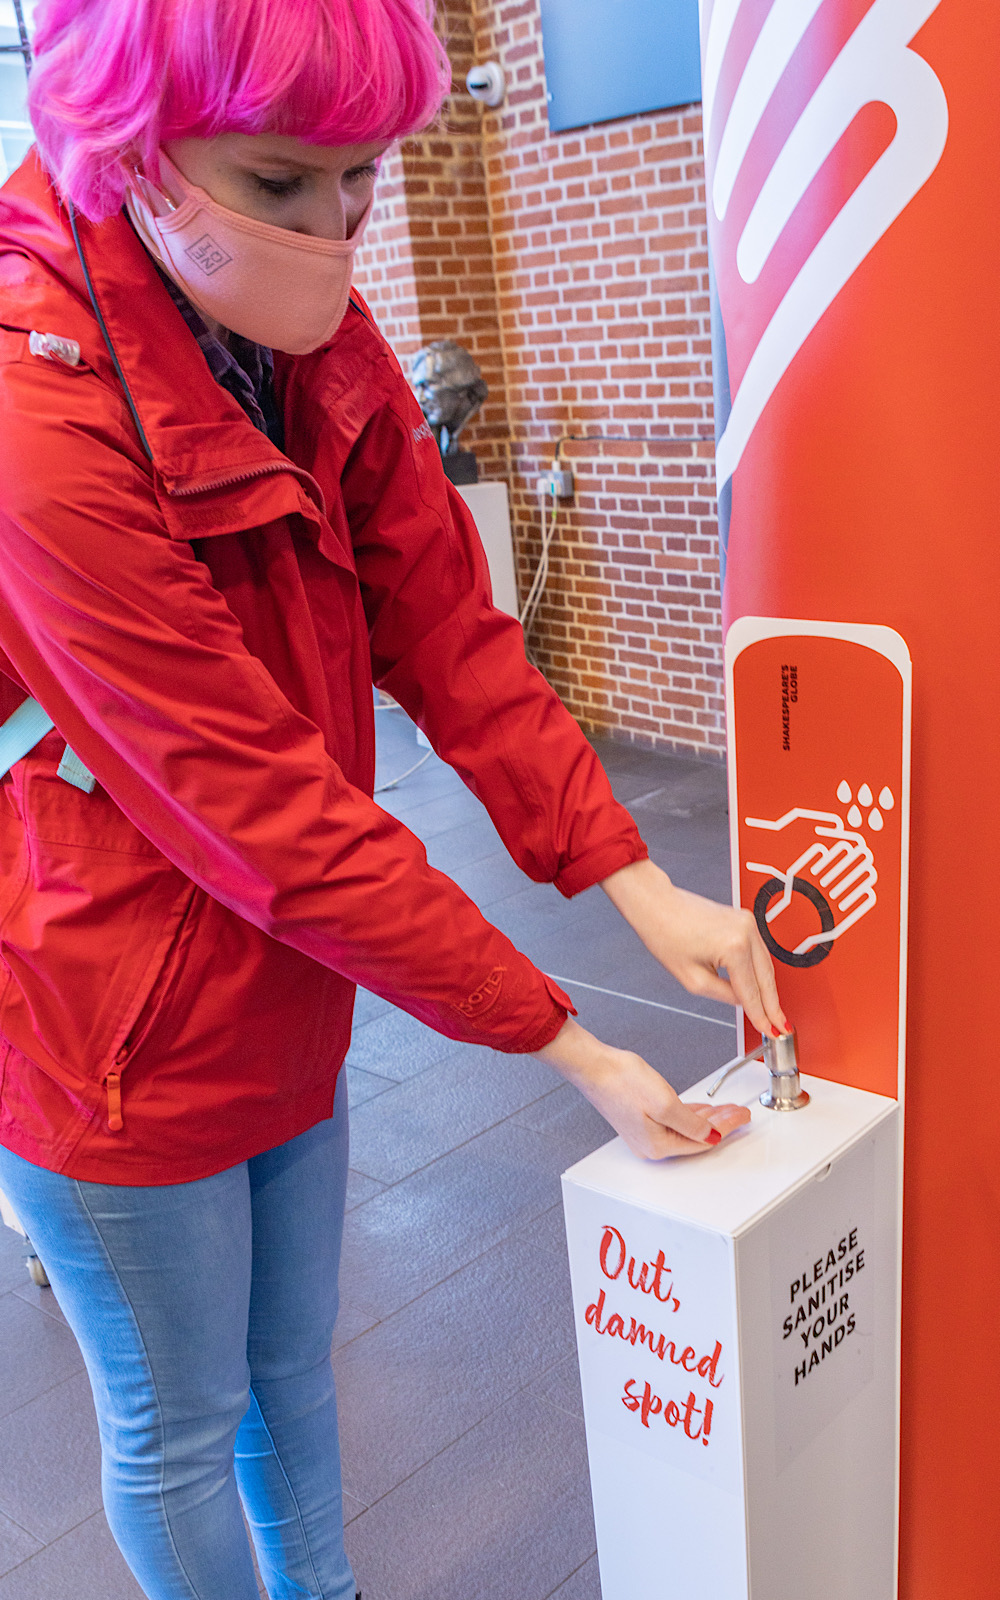 An audience member in a red jacket leans down to sanitise her hands at a sanitiser station